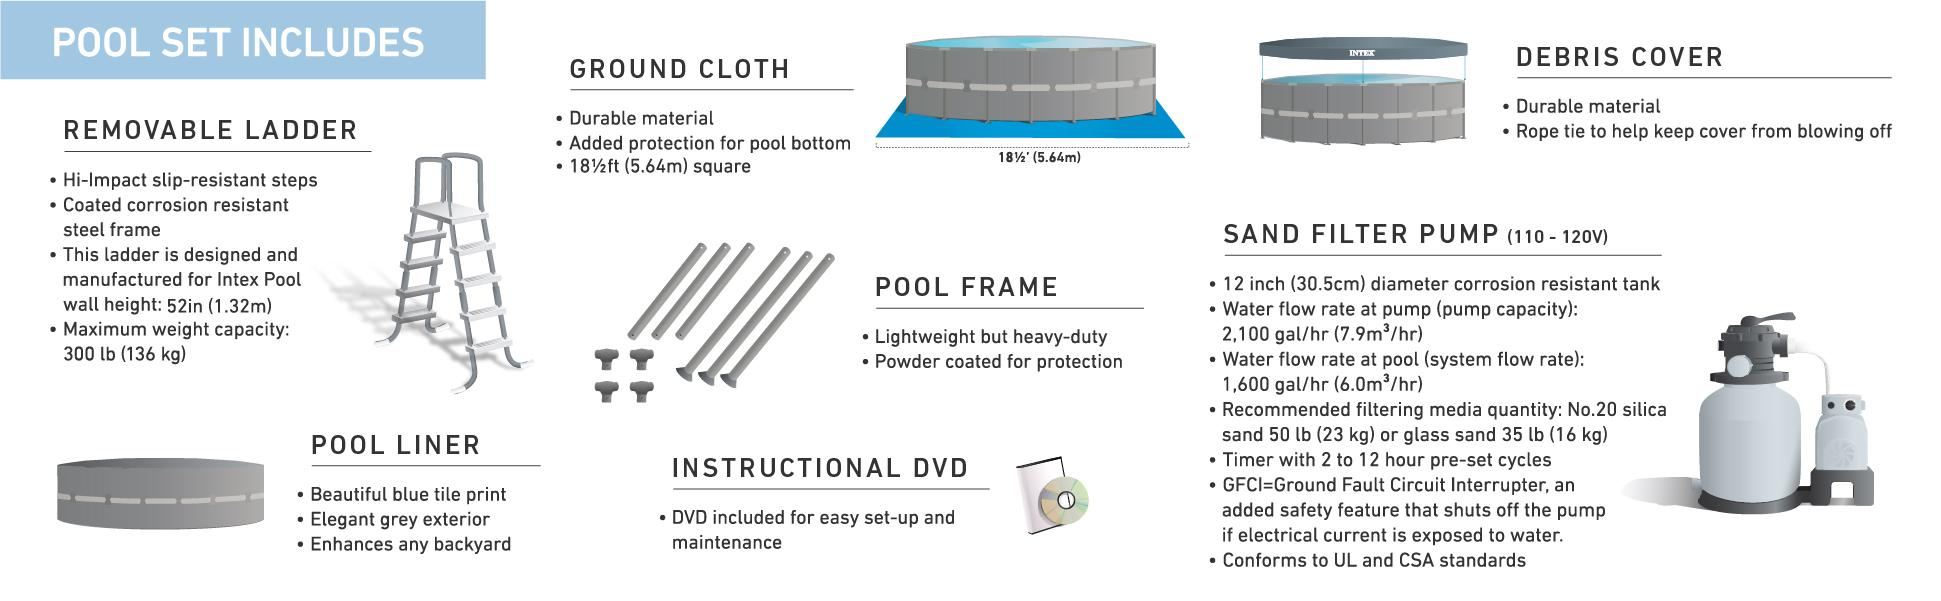 amazon com intex 18ft x 52in ultra frame pool set with sand filter